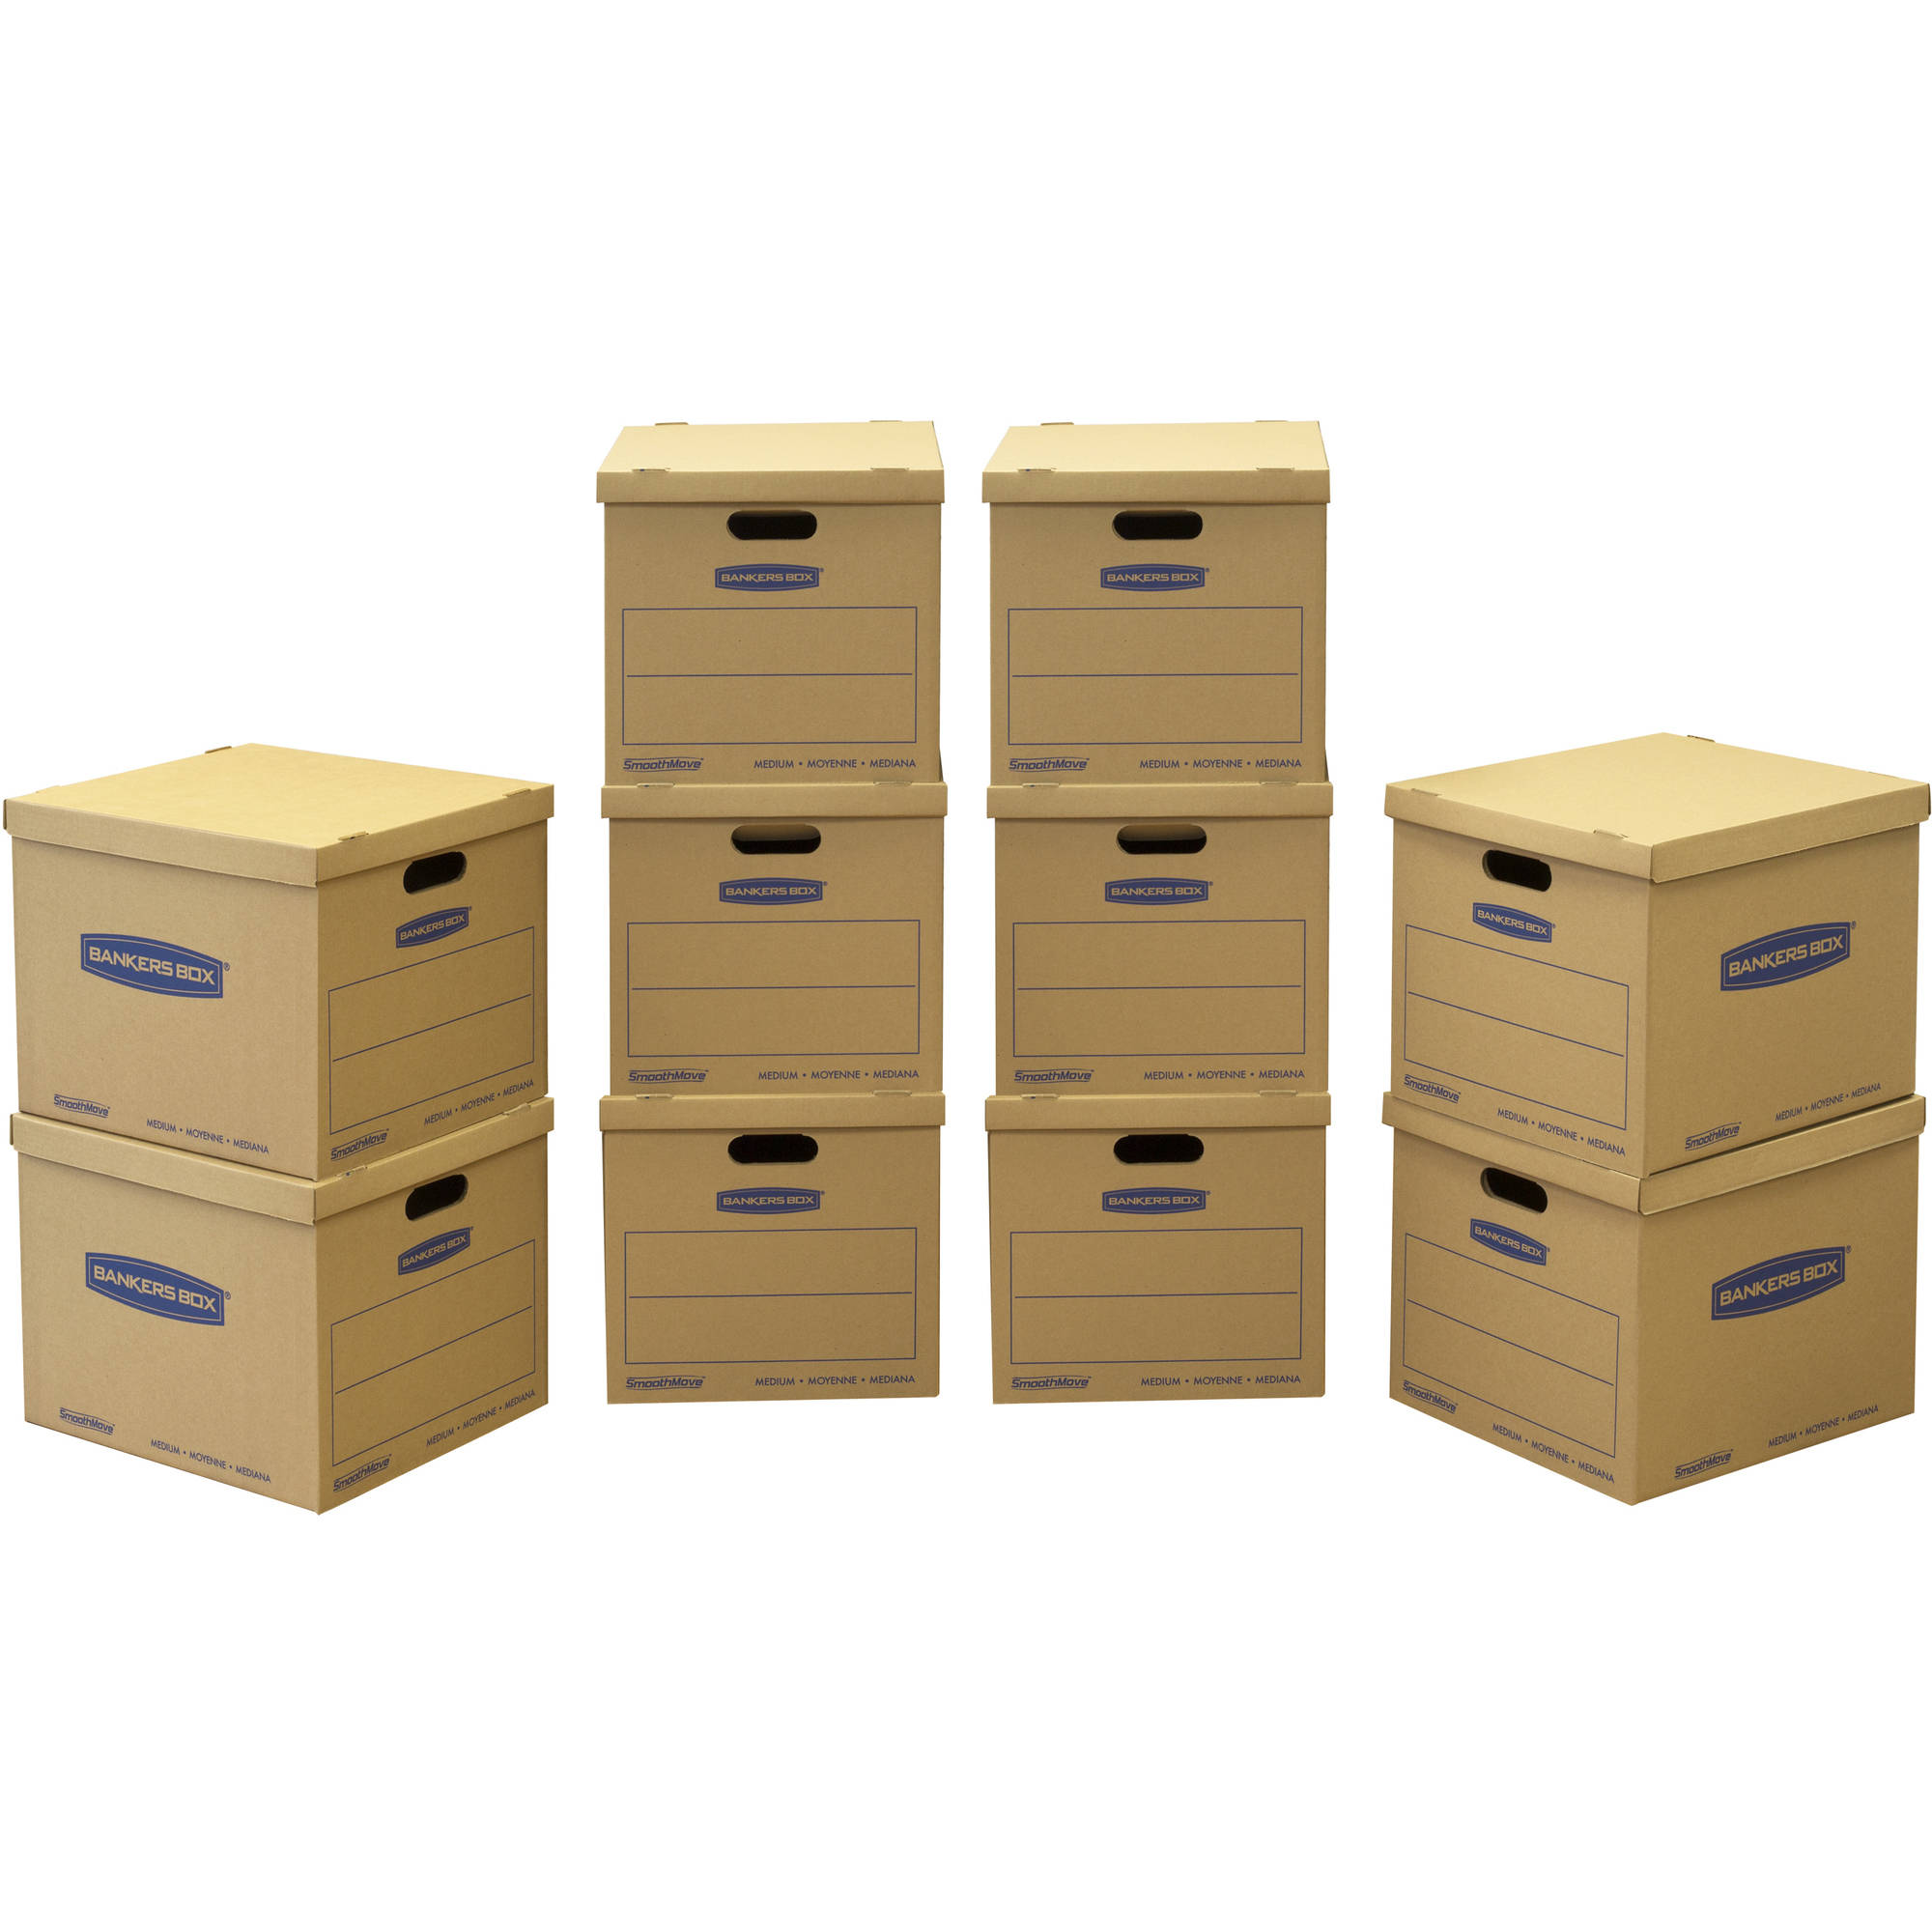 Bankers Box SmoothMove Classic Moving Box Medium 10-Pack